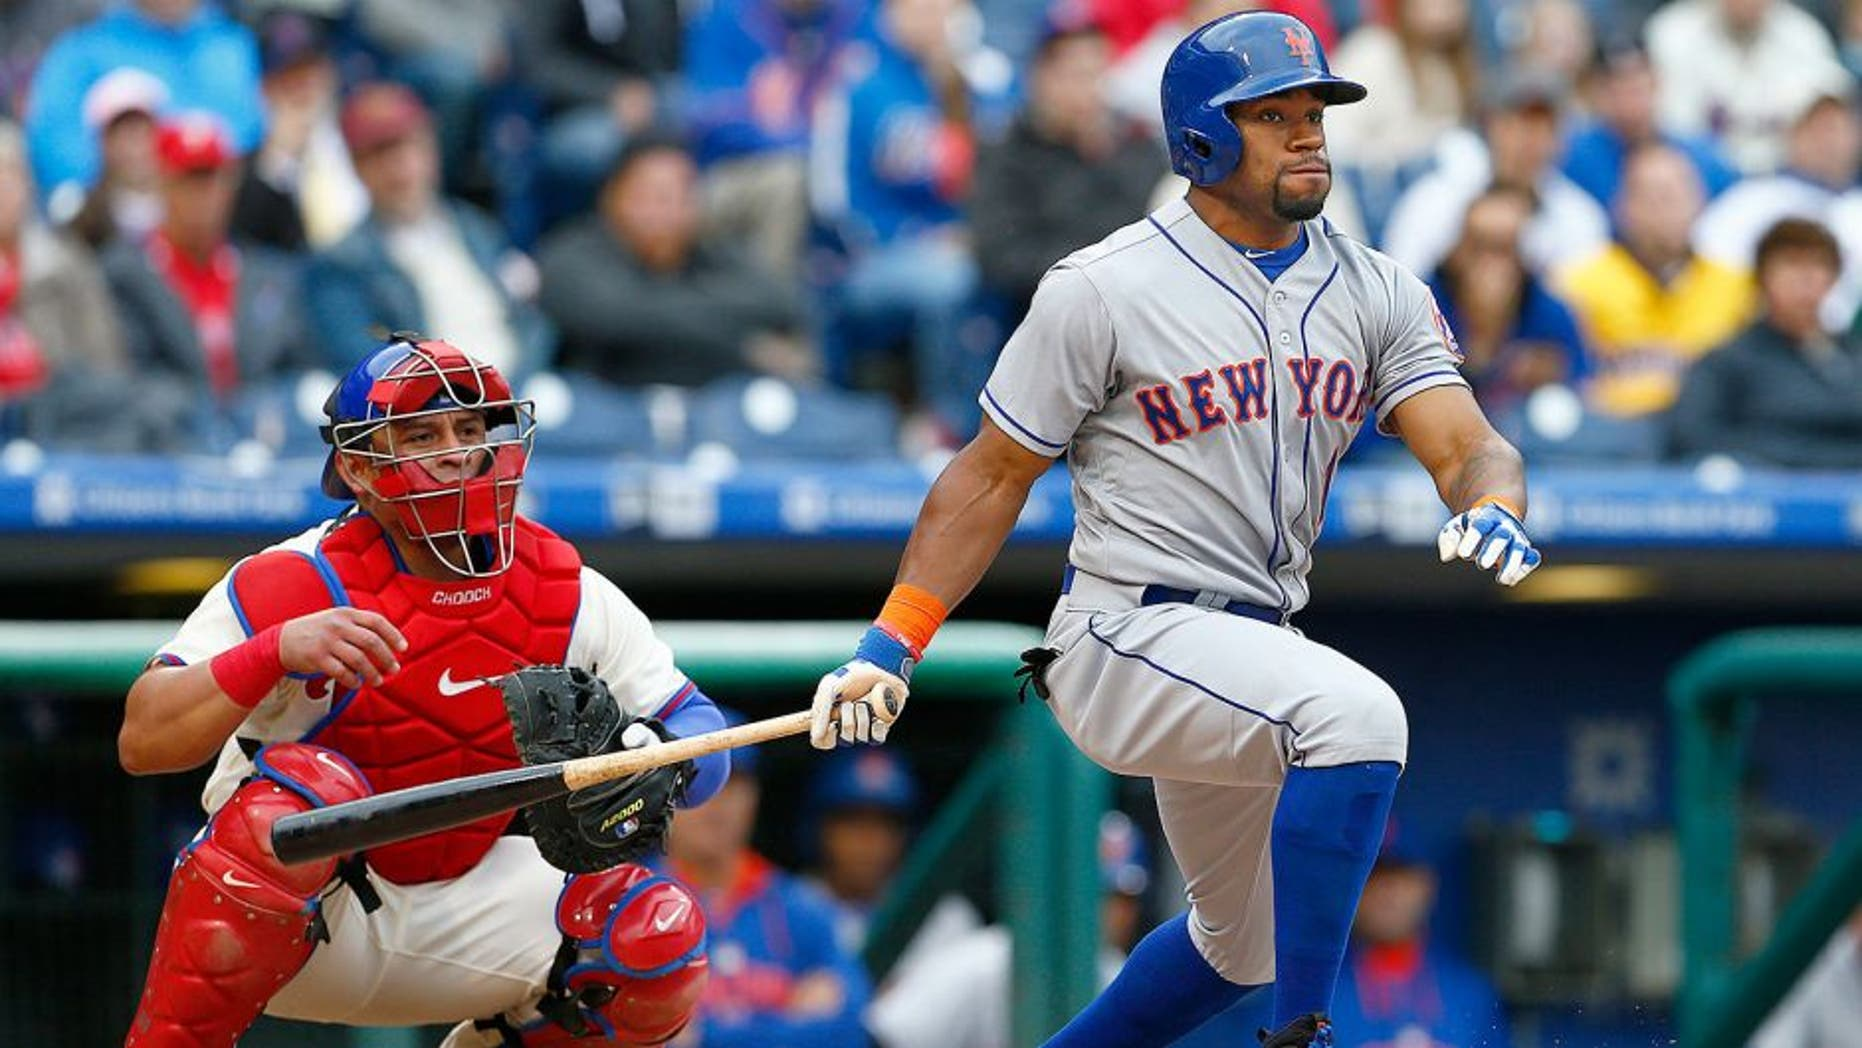 PHILADELPHIA, PA - October 1: Eric Young Jr. #1 of the New York Mets in action during an MLB game against the Philadelphia Phillies at Citizens Bank Park on October 1, 2015 in Philadelphia, Pennsylvania. The Phillies defeated the Mets 3-0. (Photo by Rich Schultz/Getty Images)